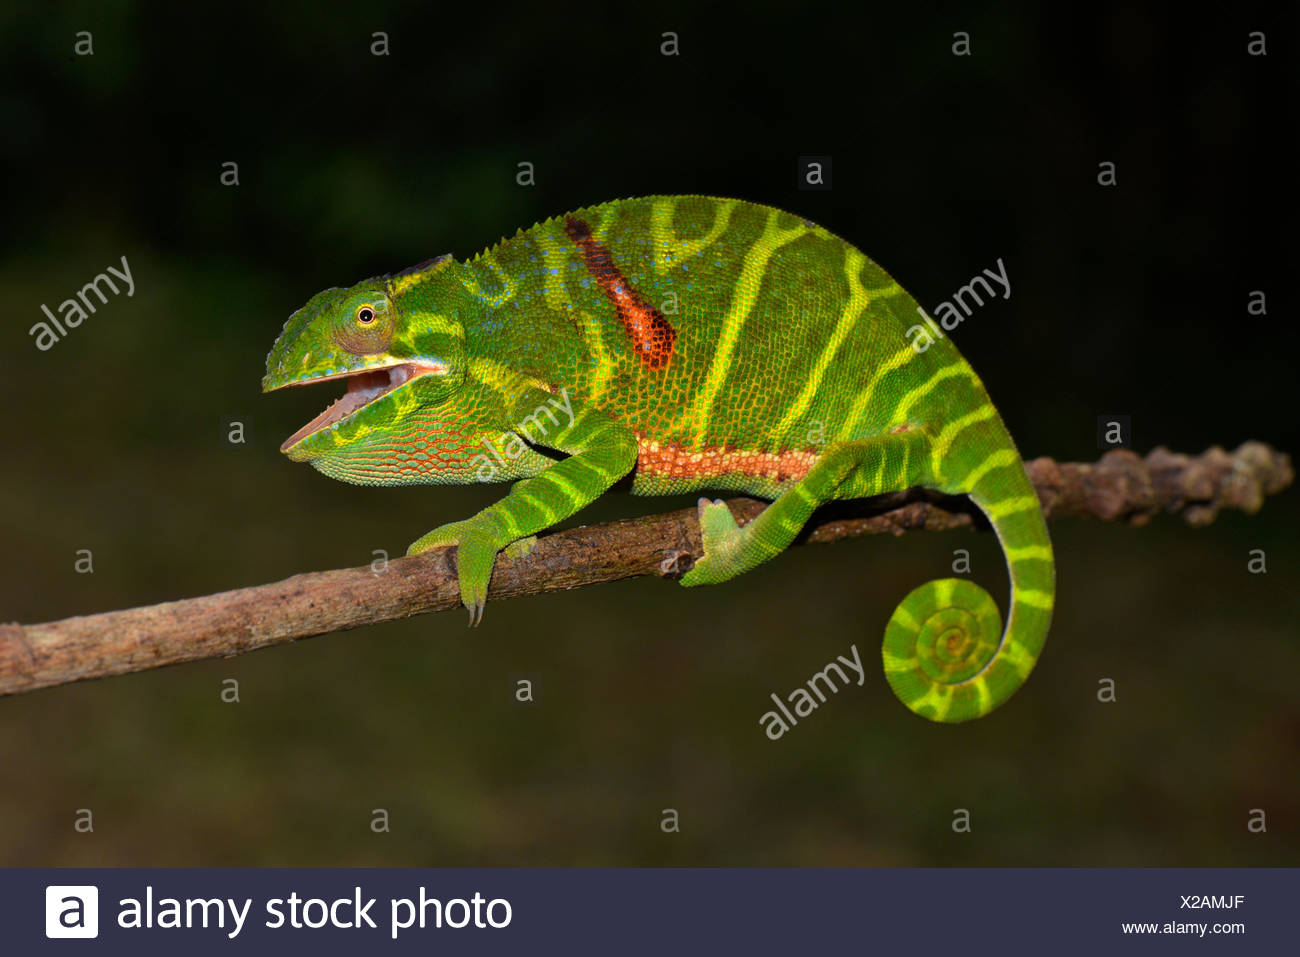 Female chameleon (Furcifer timoni), Montagne d'Ambre National Park, Northern Madagascar - Stock Image